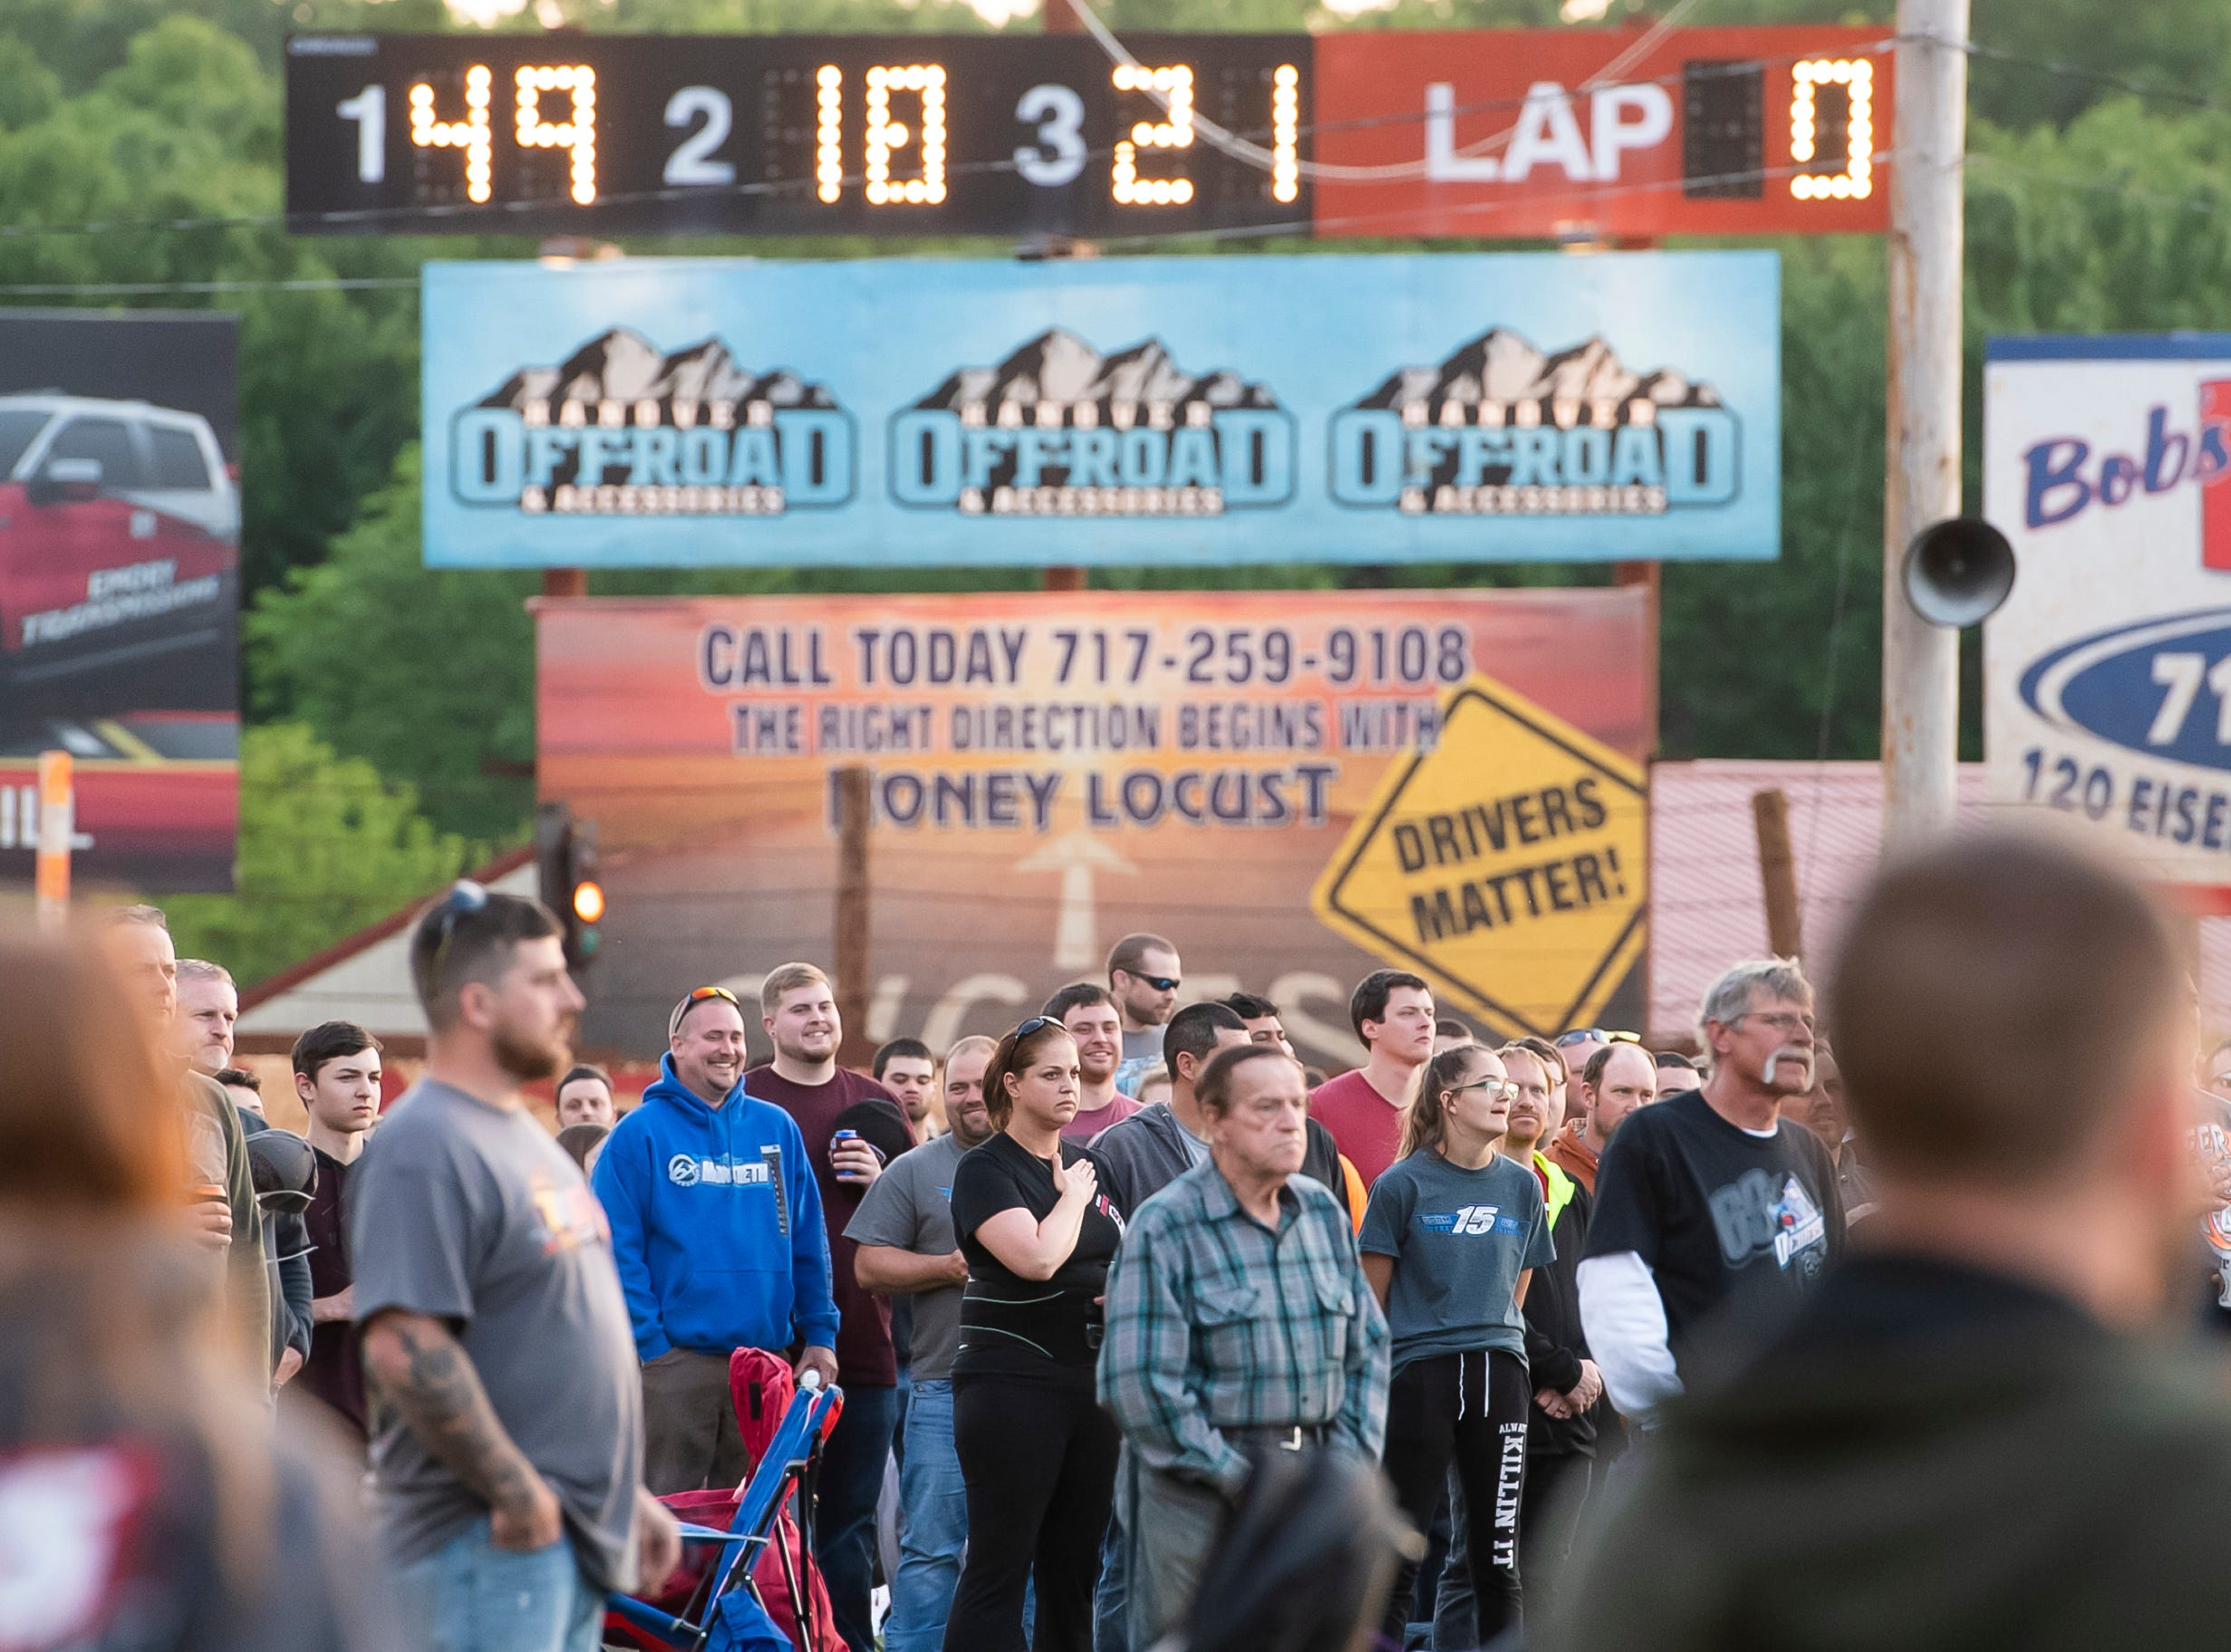 Spectators observe the national anthem before the start of races during the World of Outlaws Gettysburg Clash at Lincoln Speedway in Abbottstown on Wednesday, May 15, 2019.